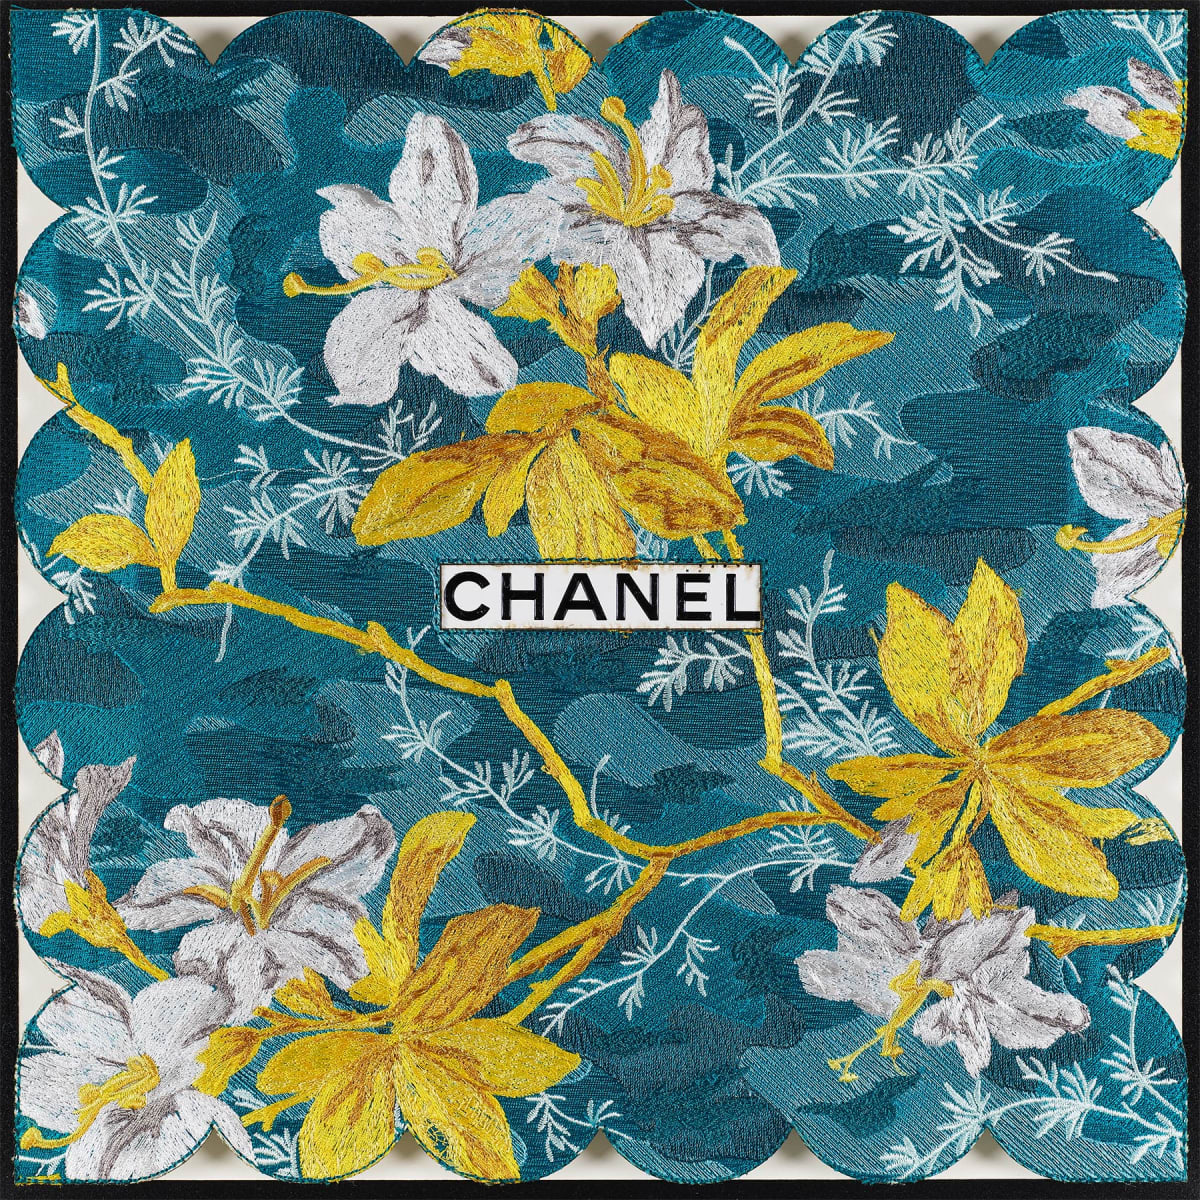 Stephen Wilson, Tropical Chanel (Teal), 2019